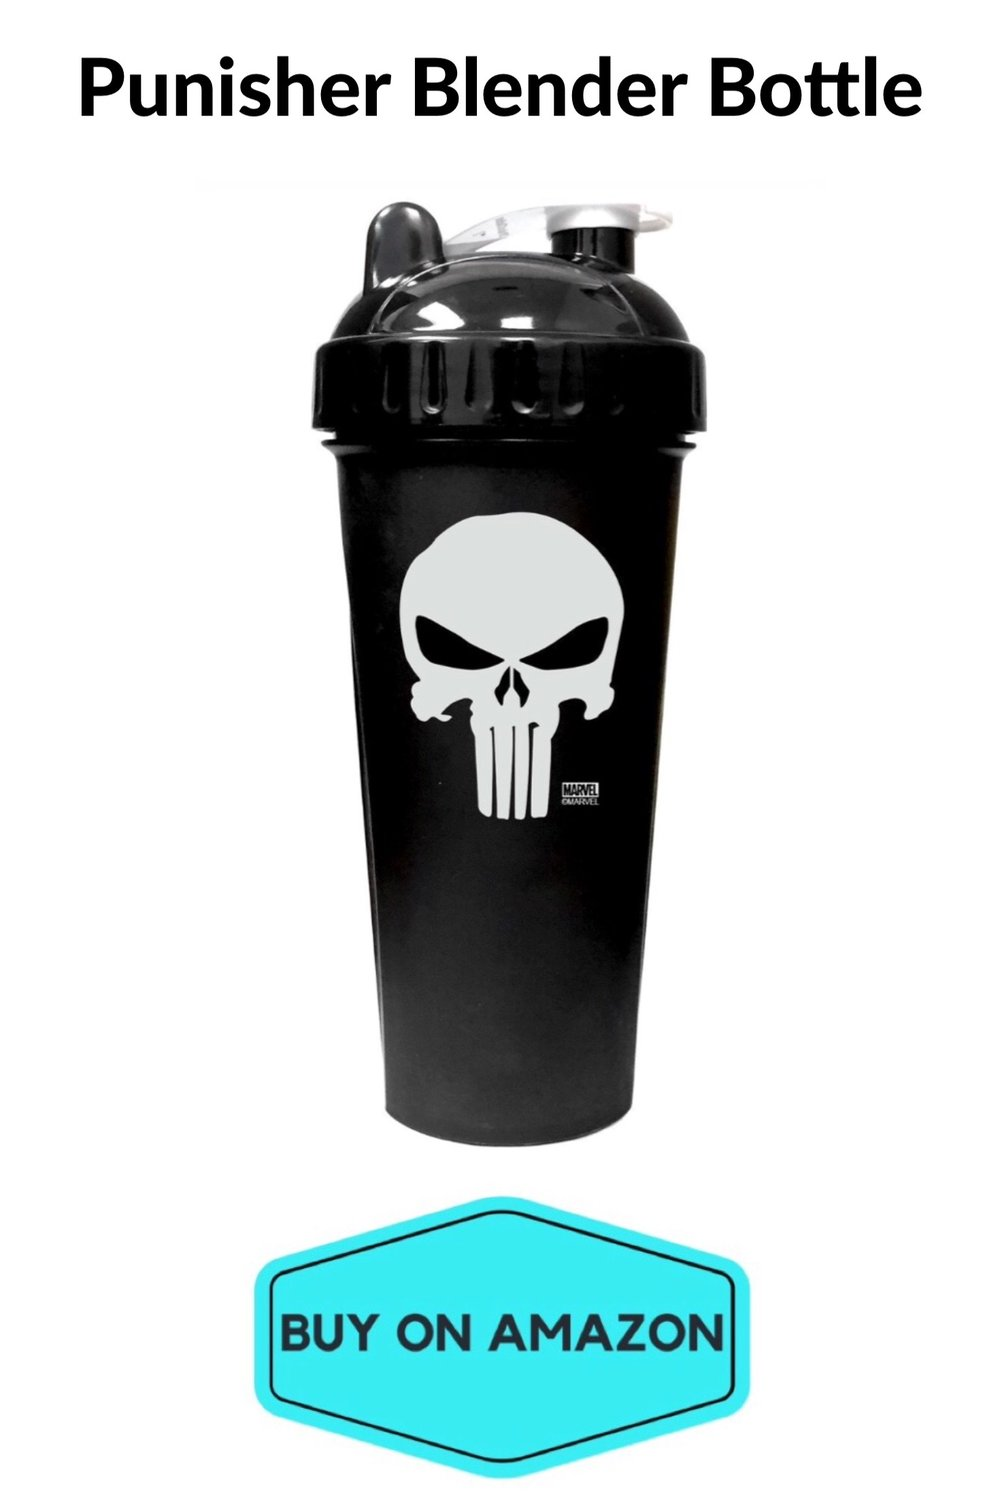 Punisher Blender Bottle